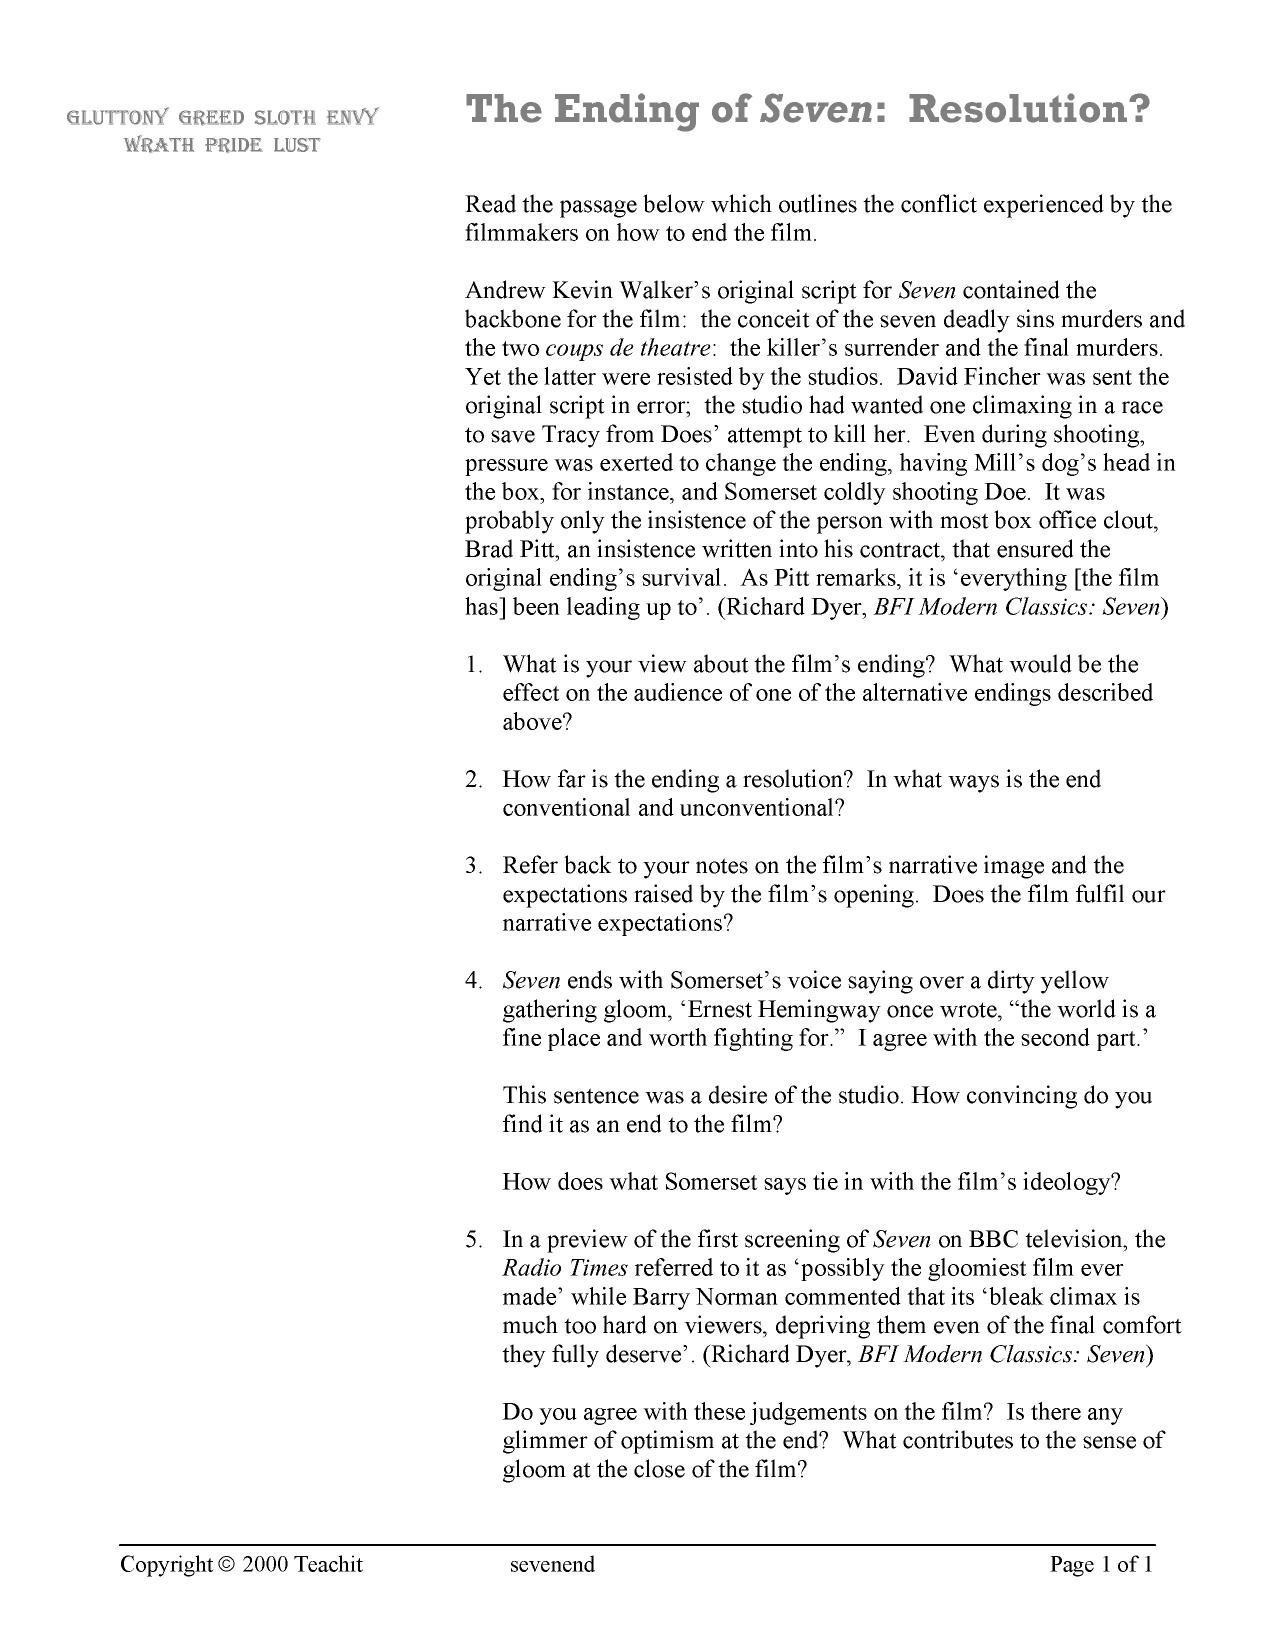 seamus heaney essay leaving cert Browse and read sample essay on seamus heaney leaving cert sample essay on seamus heaney leaving cert some people may be laughing when looking at you reading in your spare time.